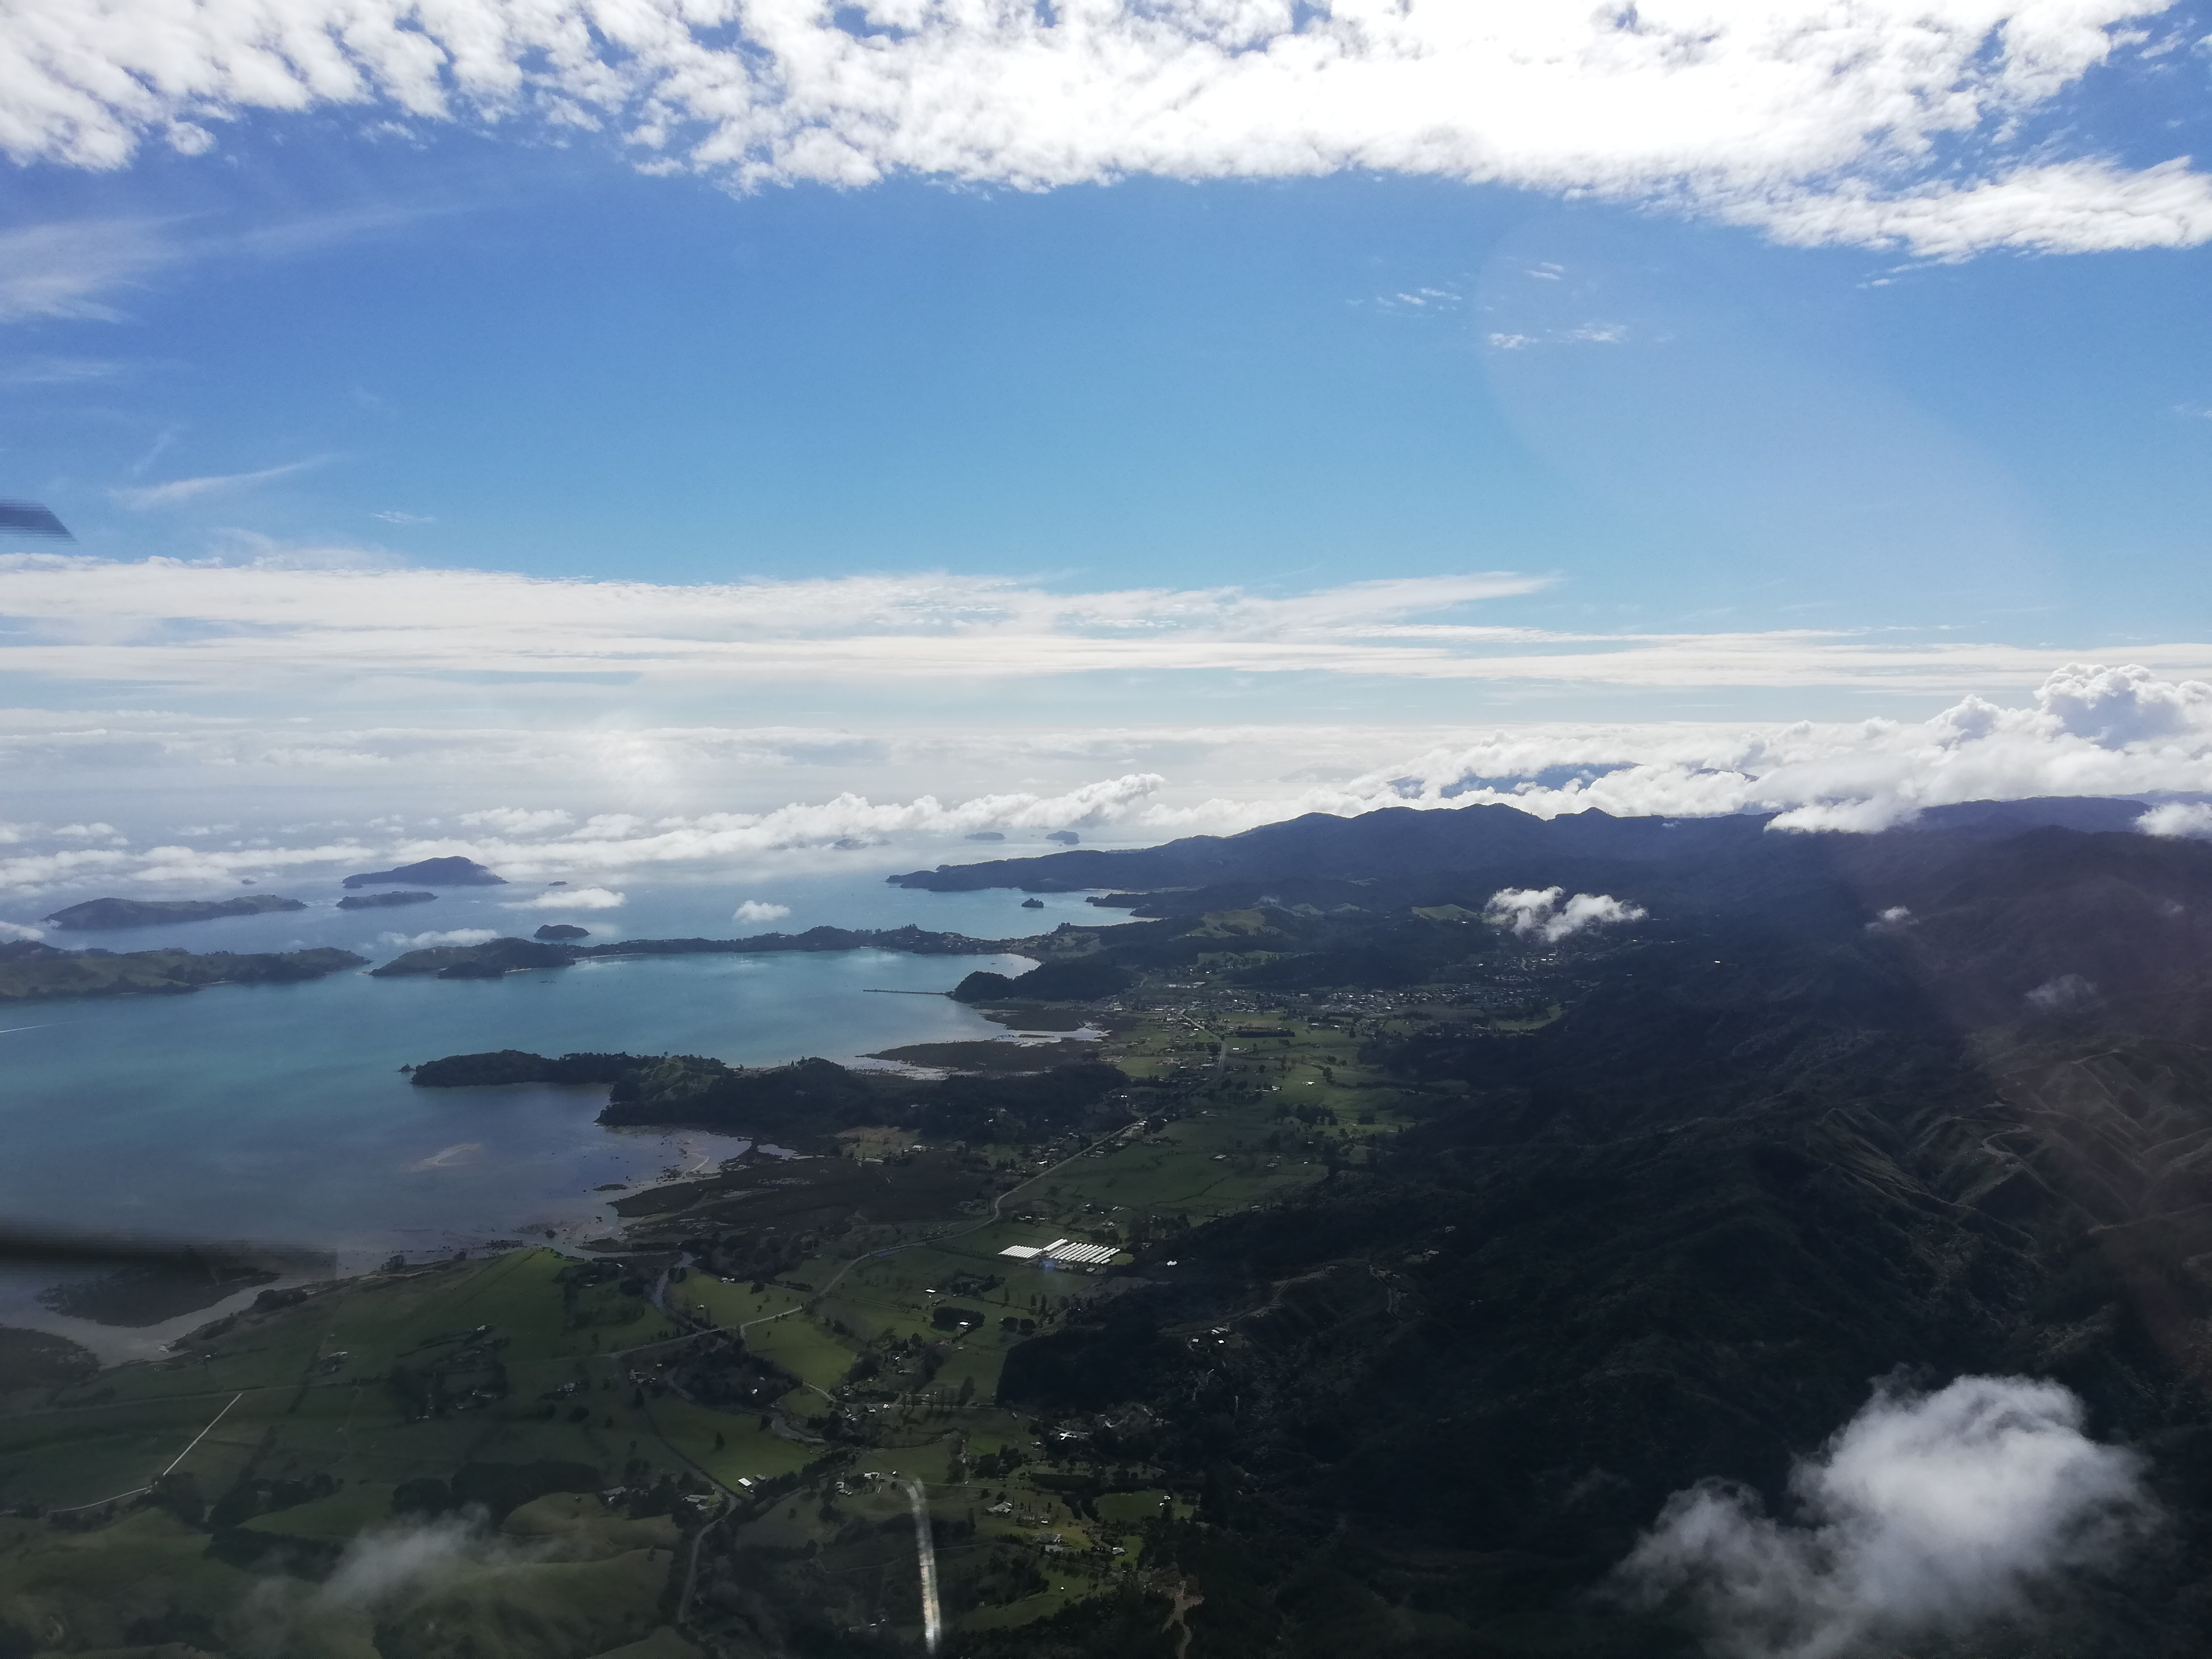 Coasting out from the Coromandel